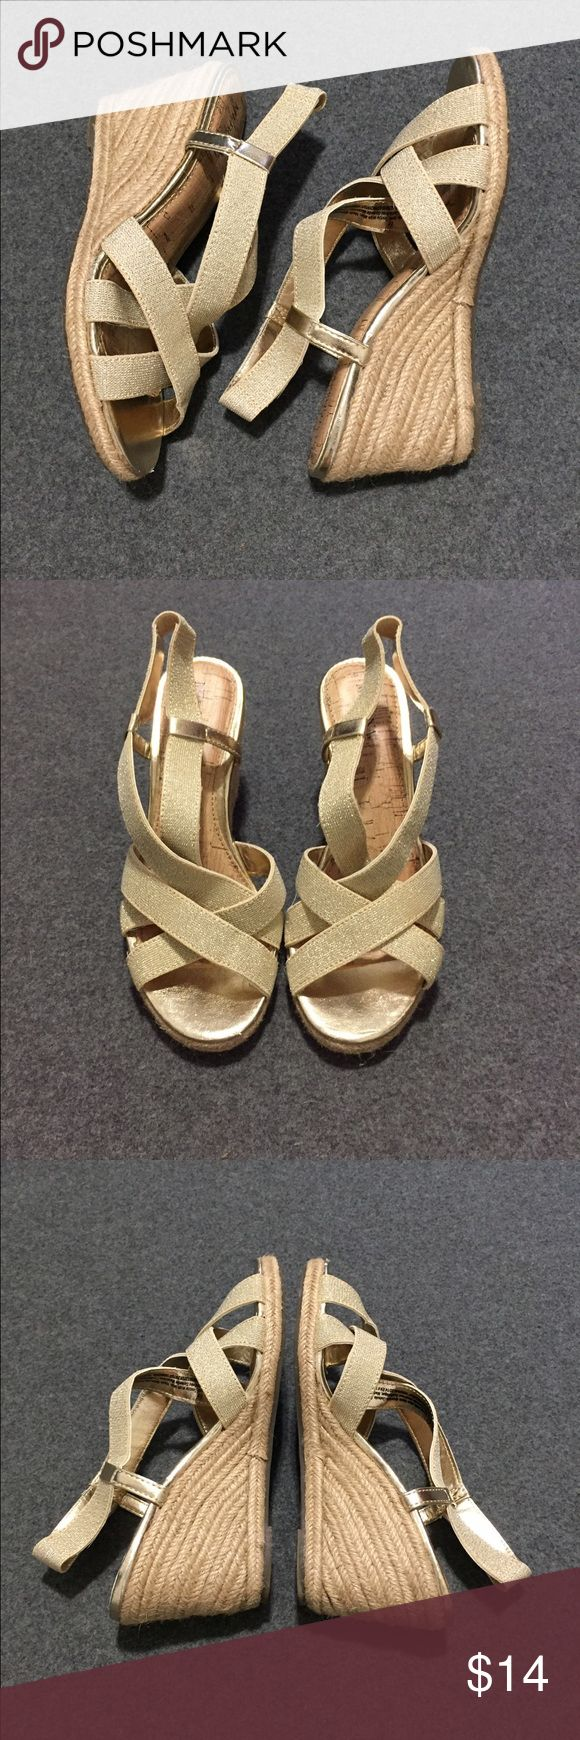 Gold Wedge Heels These Merona cork-wedge, sparkly gold heeled sandals feature elastic straps for comfort fit. Worn a handful of times, in great shape. Merona Shoes Wedges